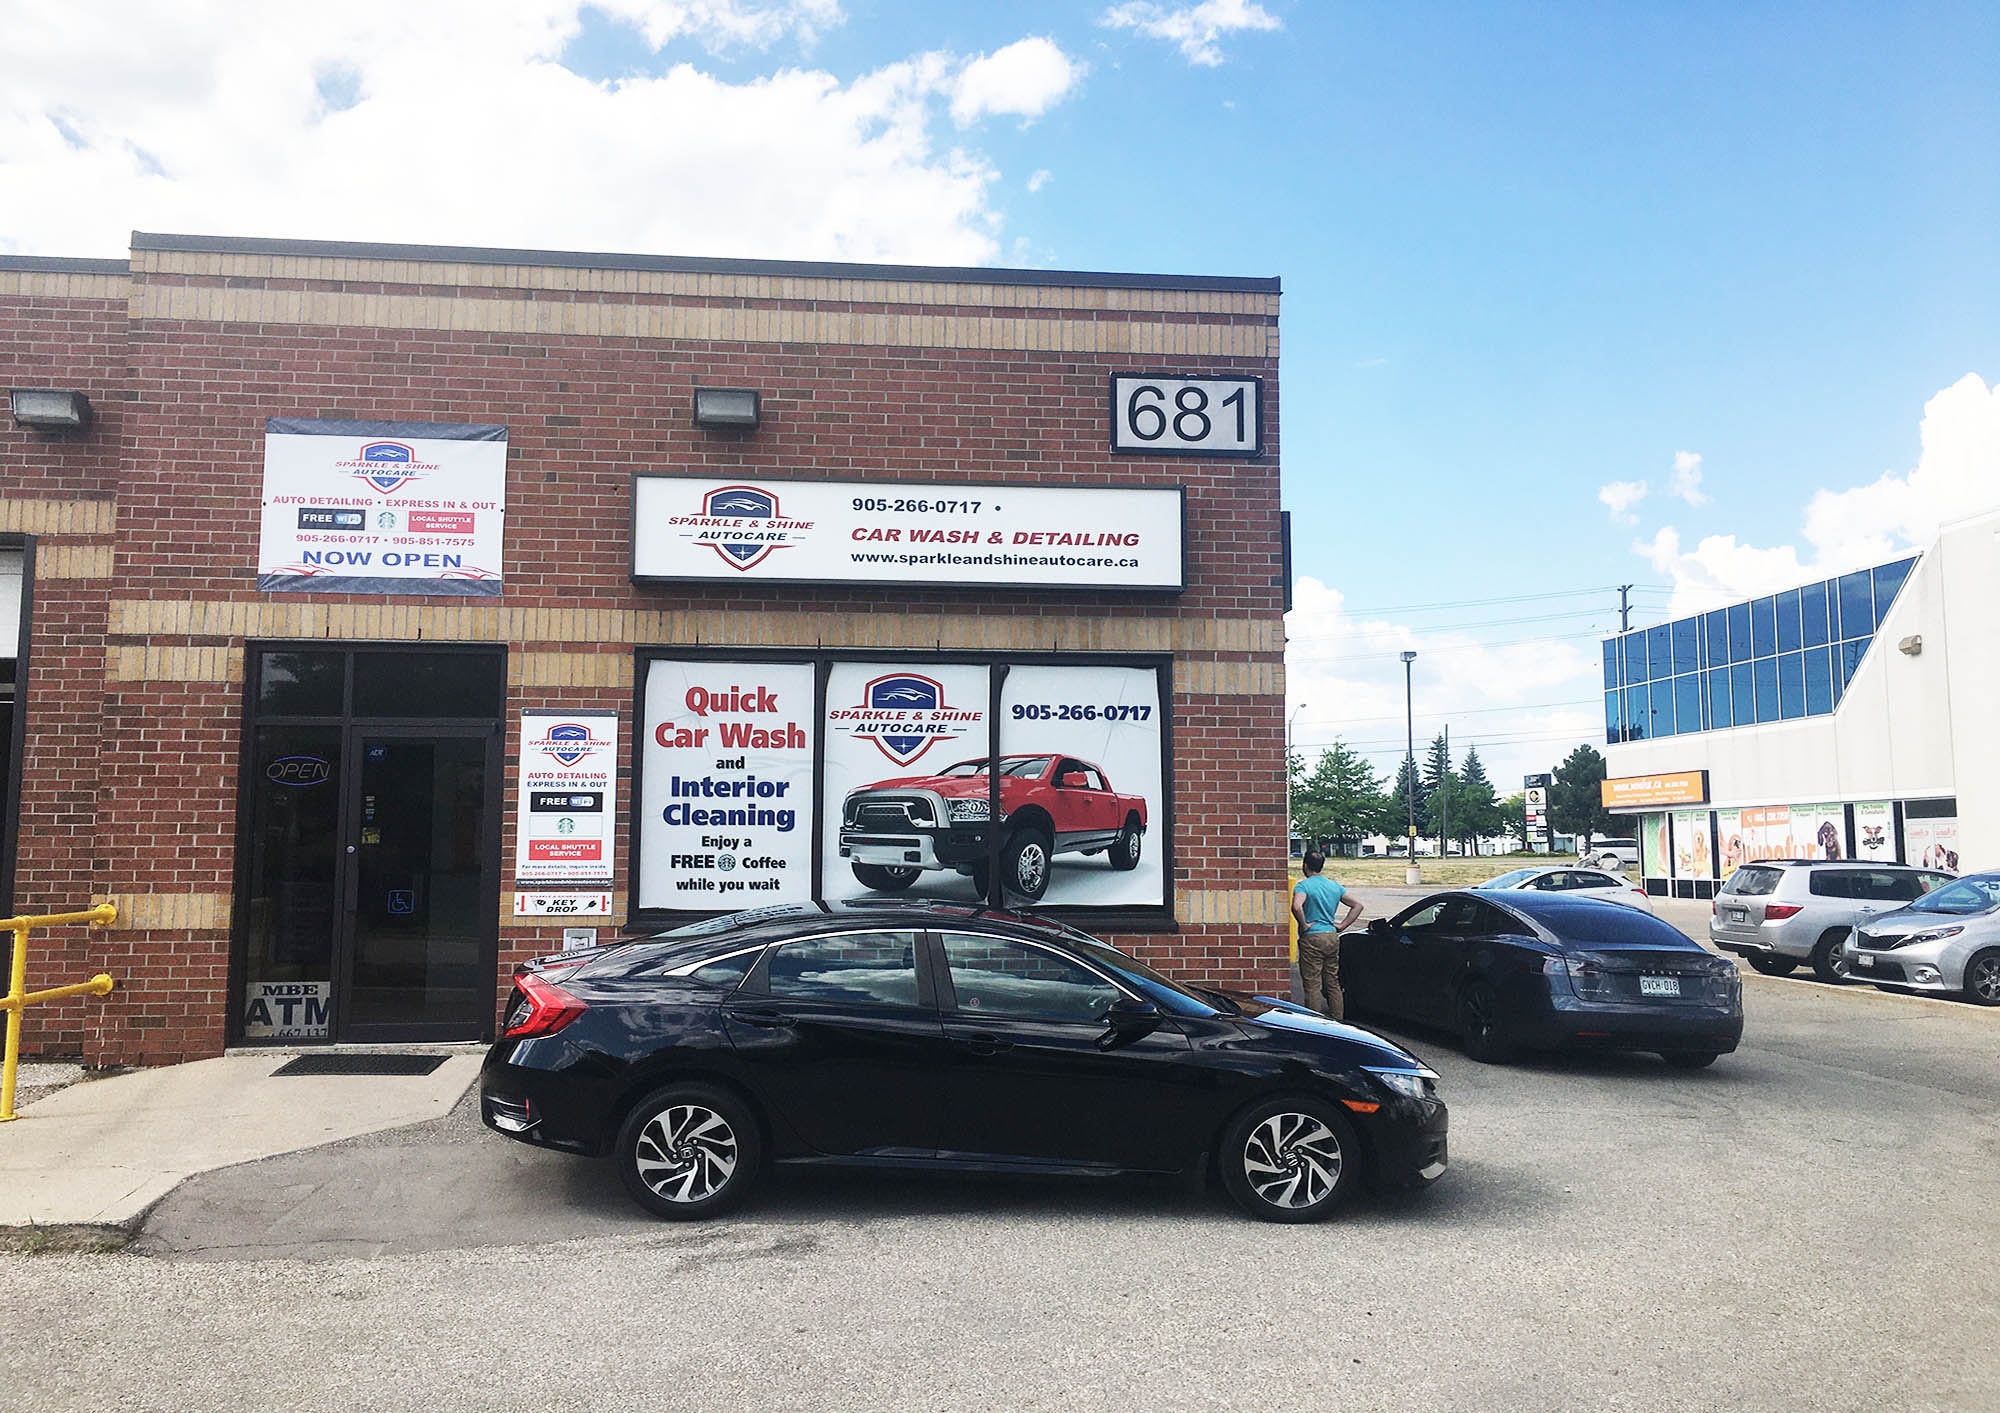 CAR WASH DETAILING BUSINESS IN VAUGHAN